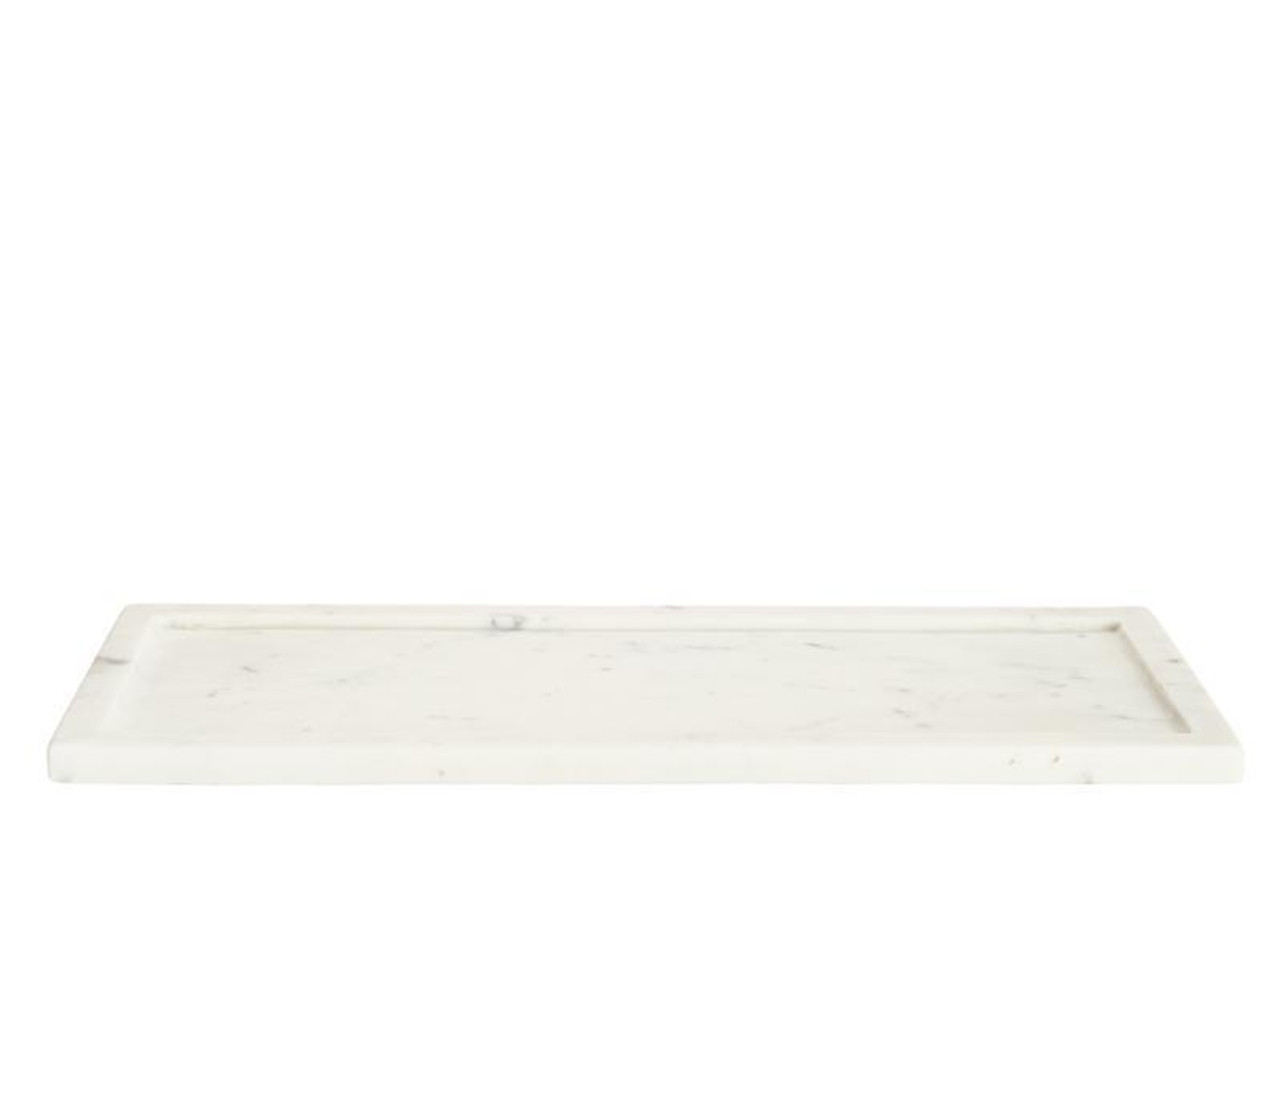 BELLE DE PROVENCE - MARBLE DISPLAY TRAY - LONG